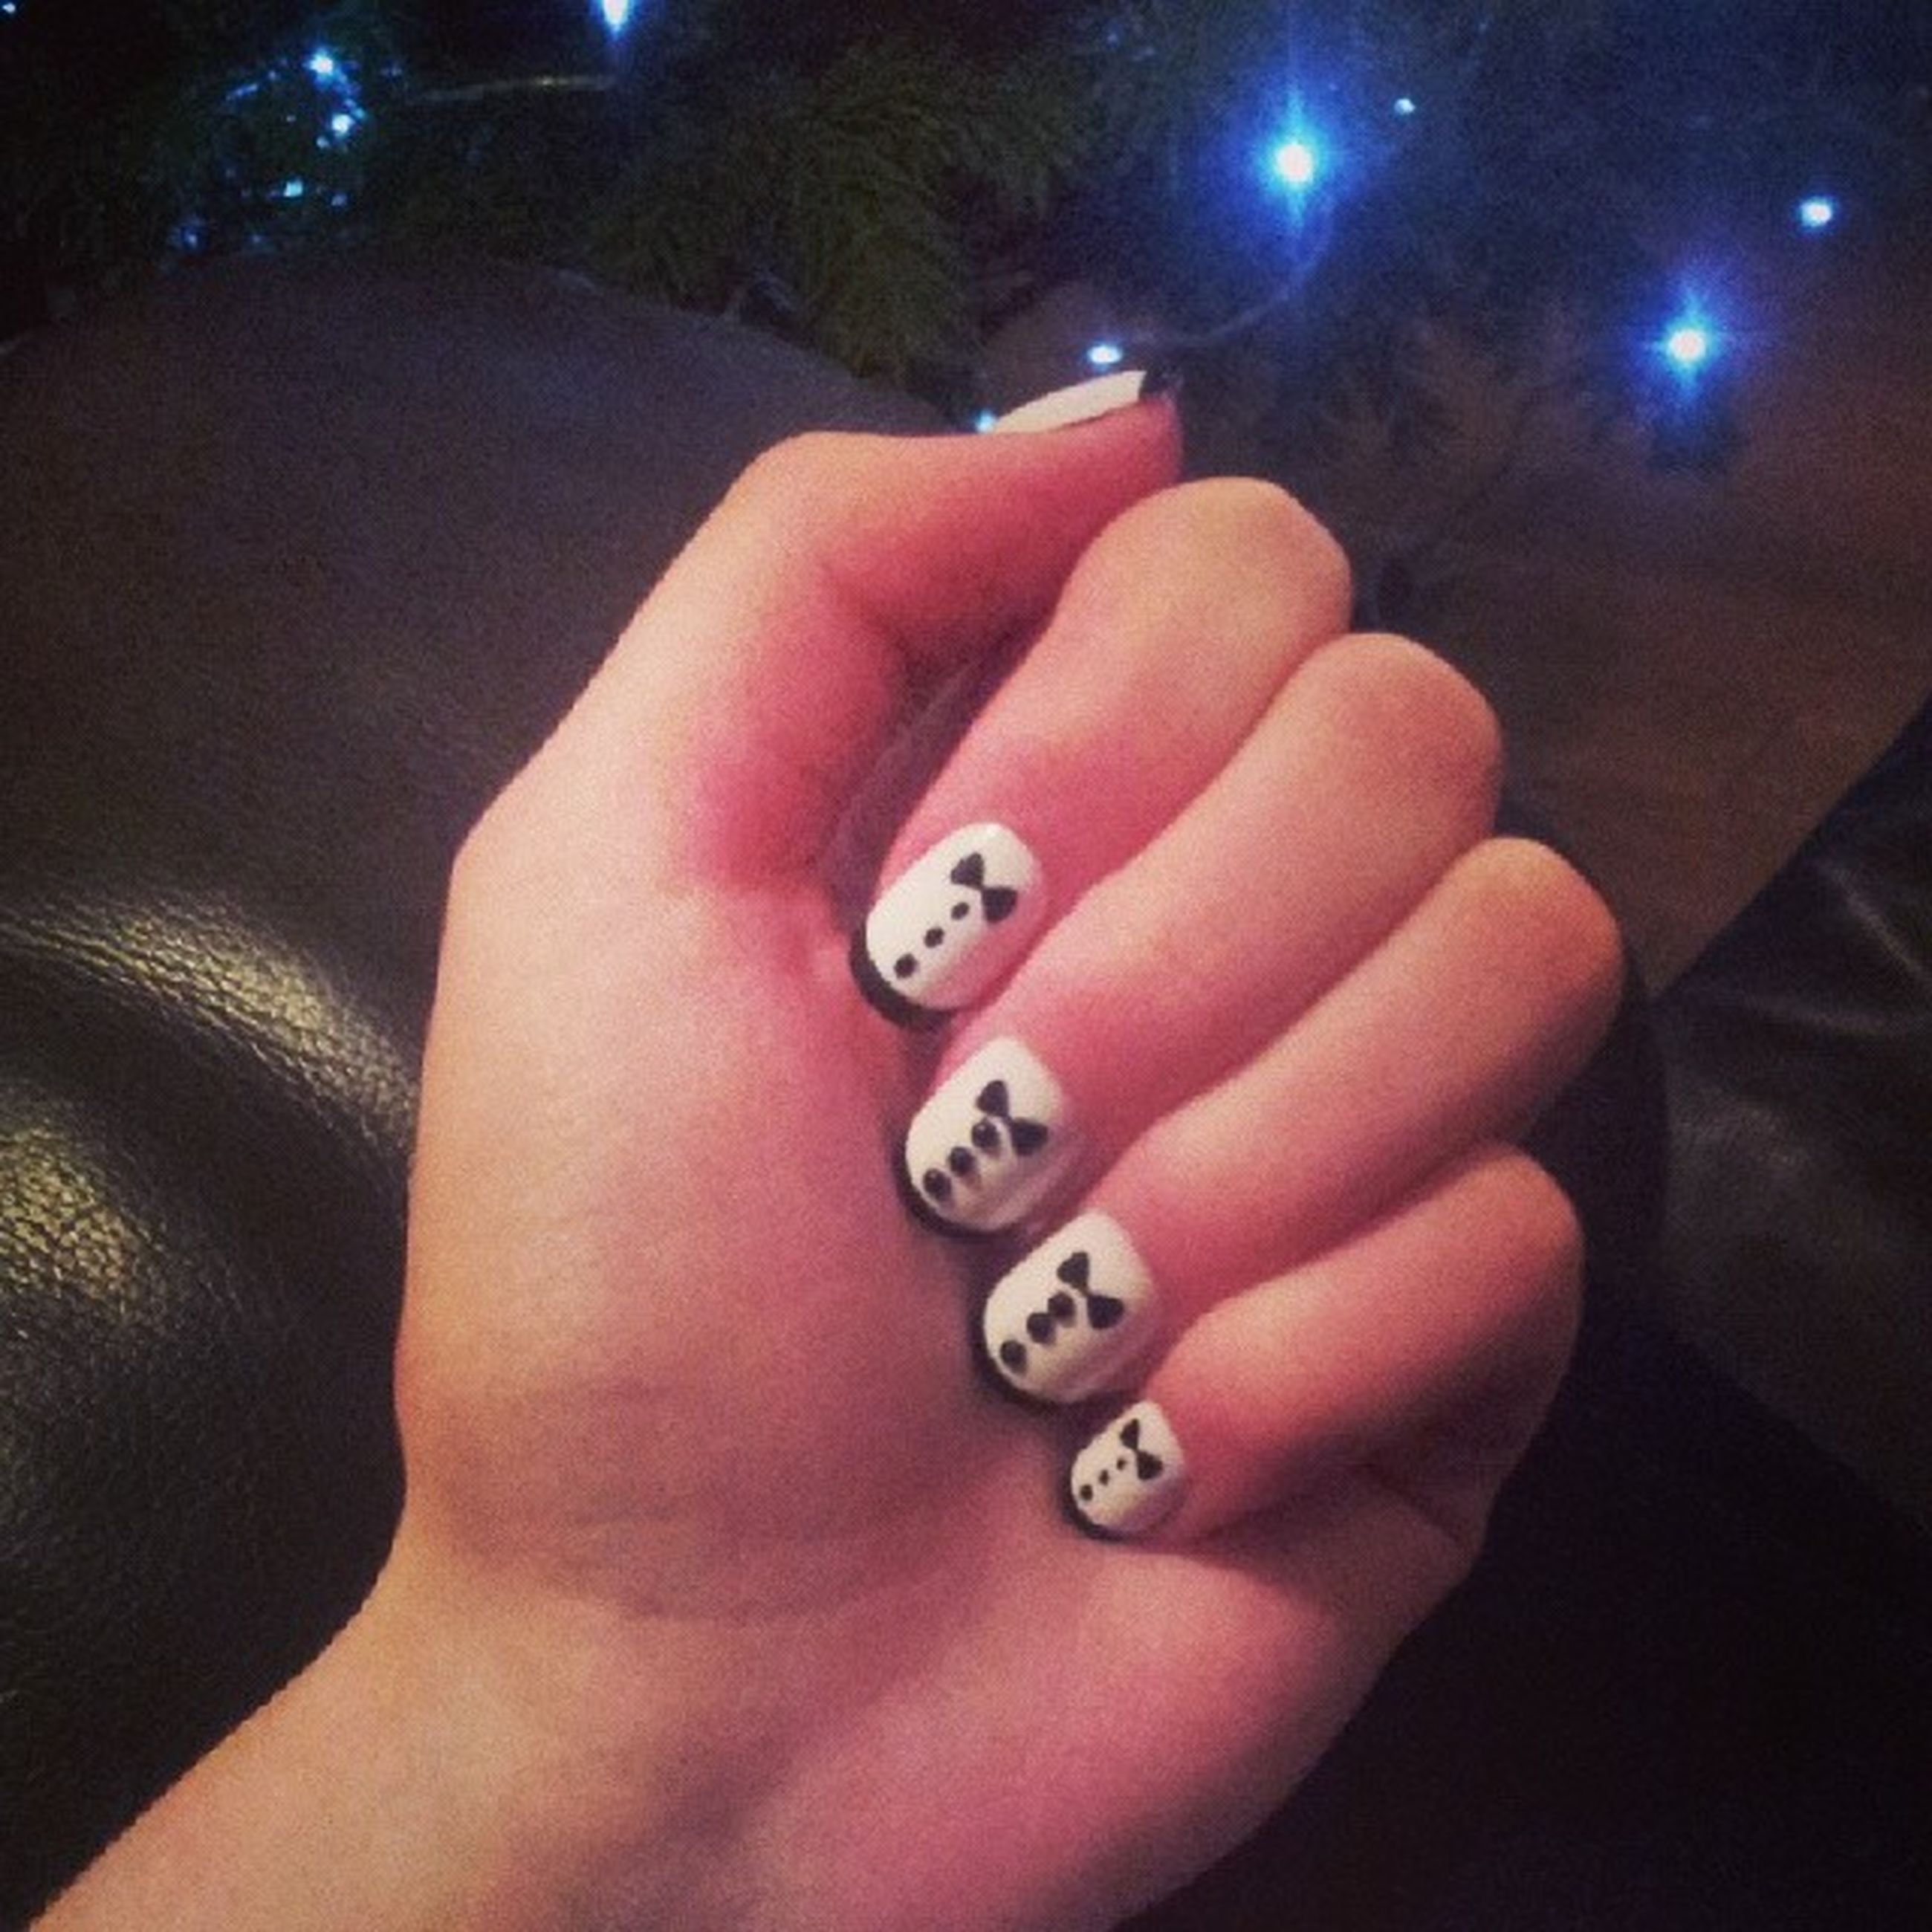 person, part of, lifestyles, human finger, indoors, close-up, personal perspective, cropped, leisure activity, holding, fashion, nail polish, ring, unrecognizable person, showing